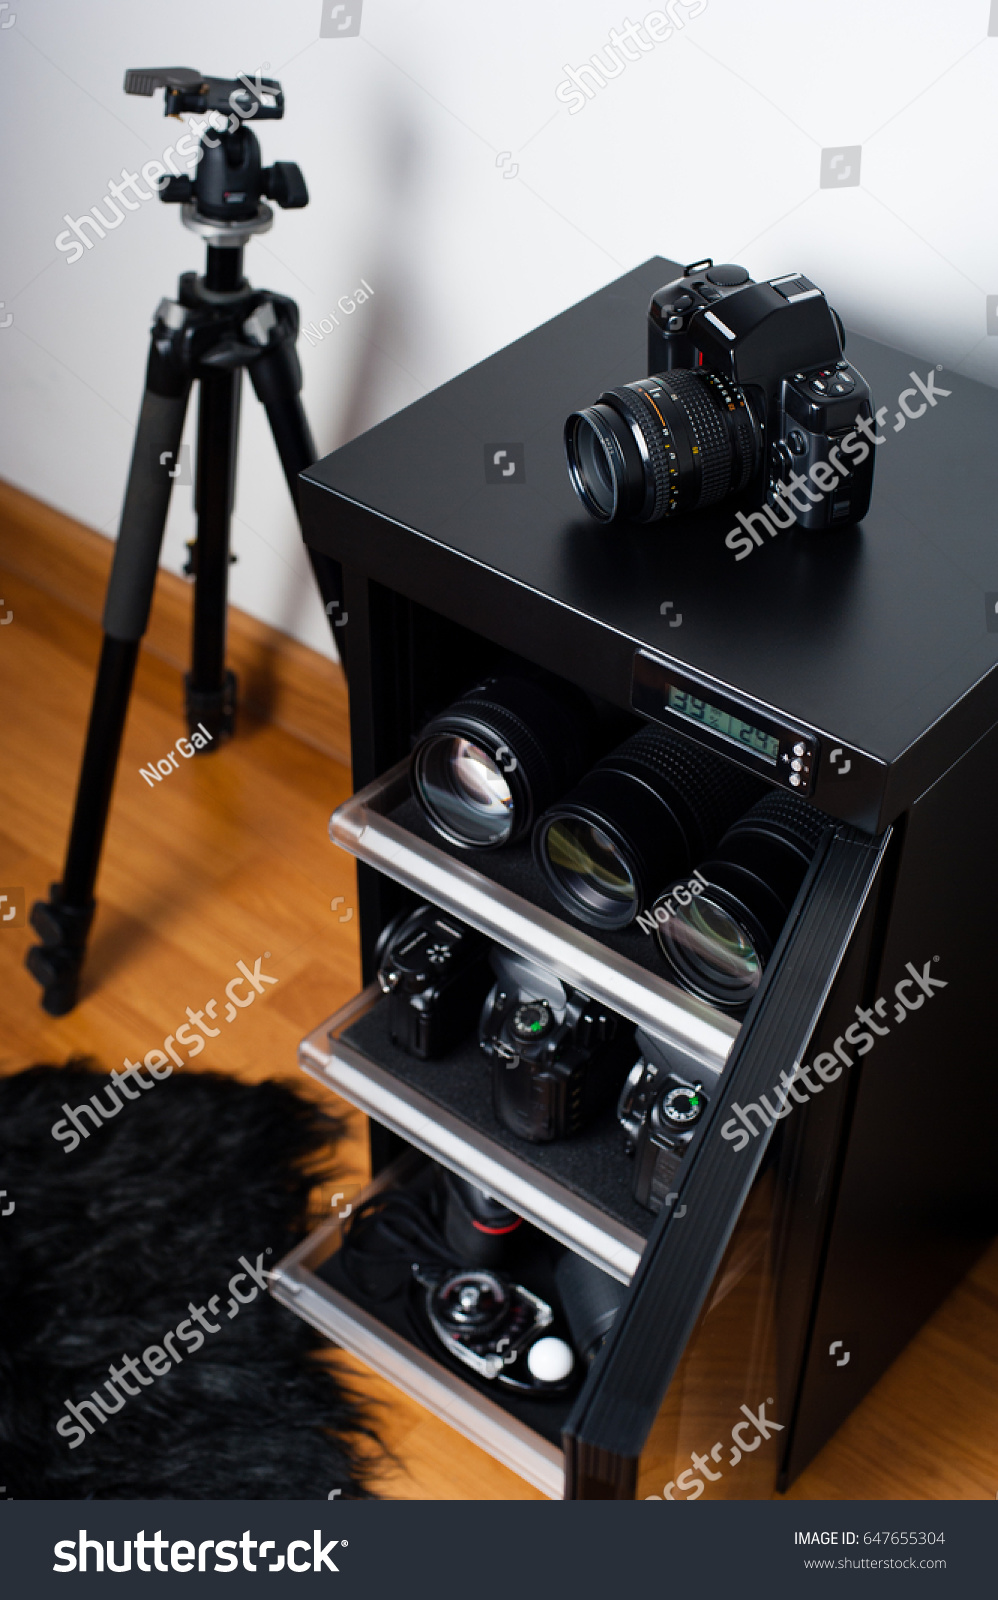 Electronic Dehumidify Dry Cabinet Storage Cameras Stock Photo Edit Drybox Camera Mirrorless Canon Eos M10 For Lens And Other Photography Equipment Shallow Depth Of